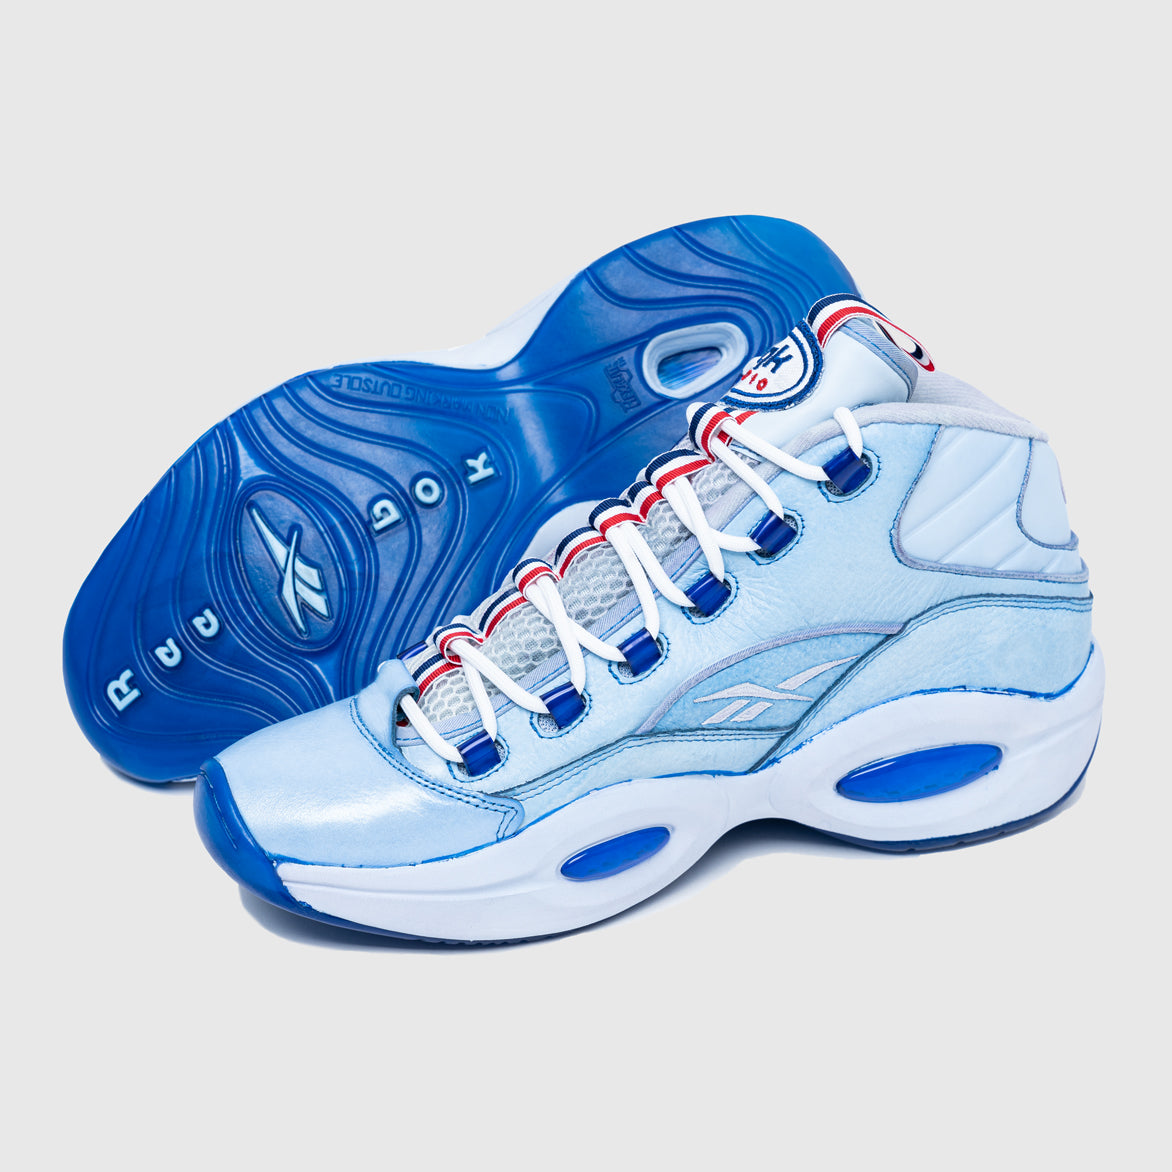 LQQK STUDIOS X 76ERS REEBOK QUESTION MID - INDIGO